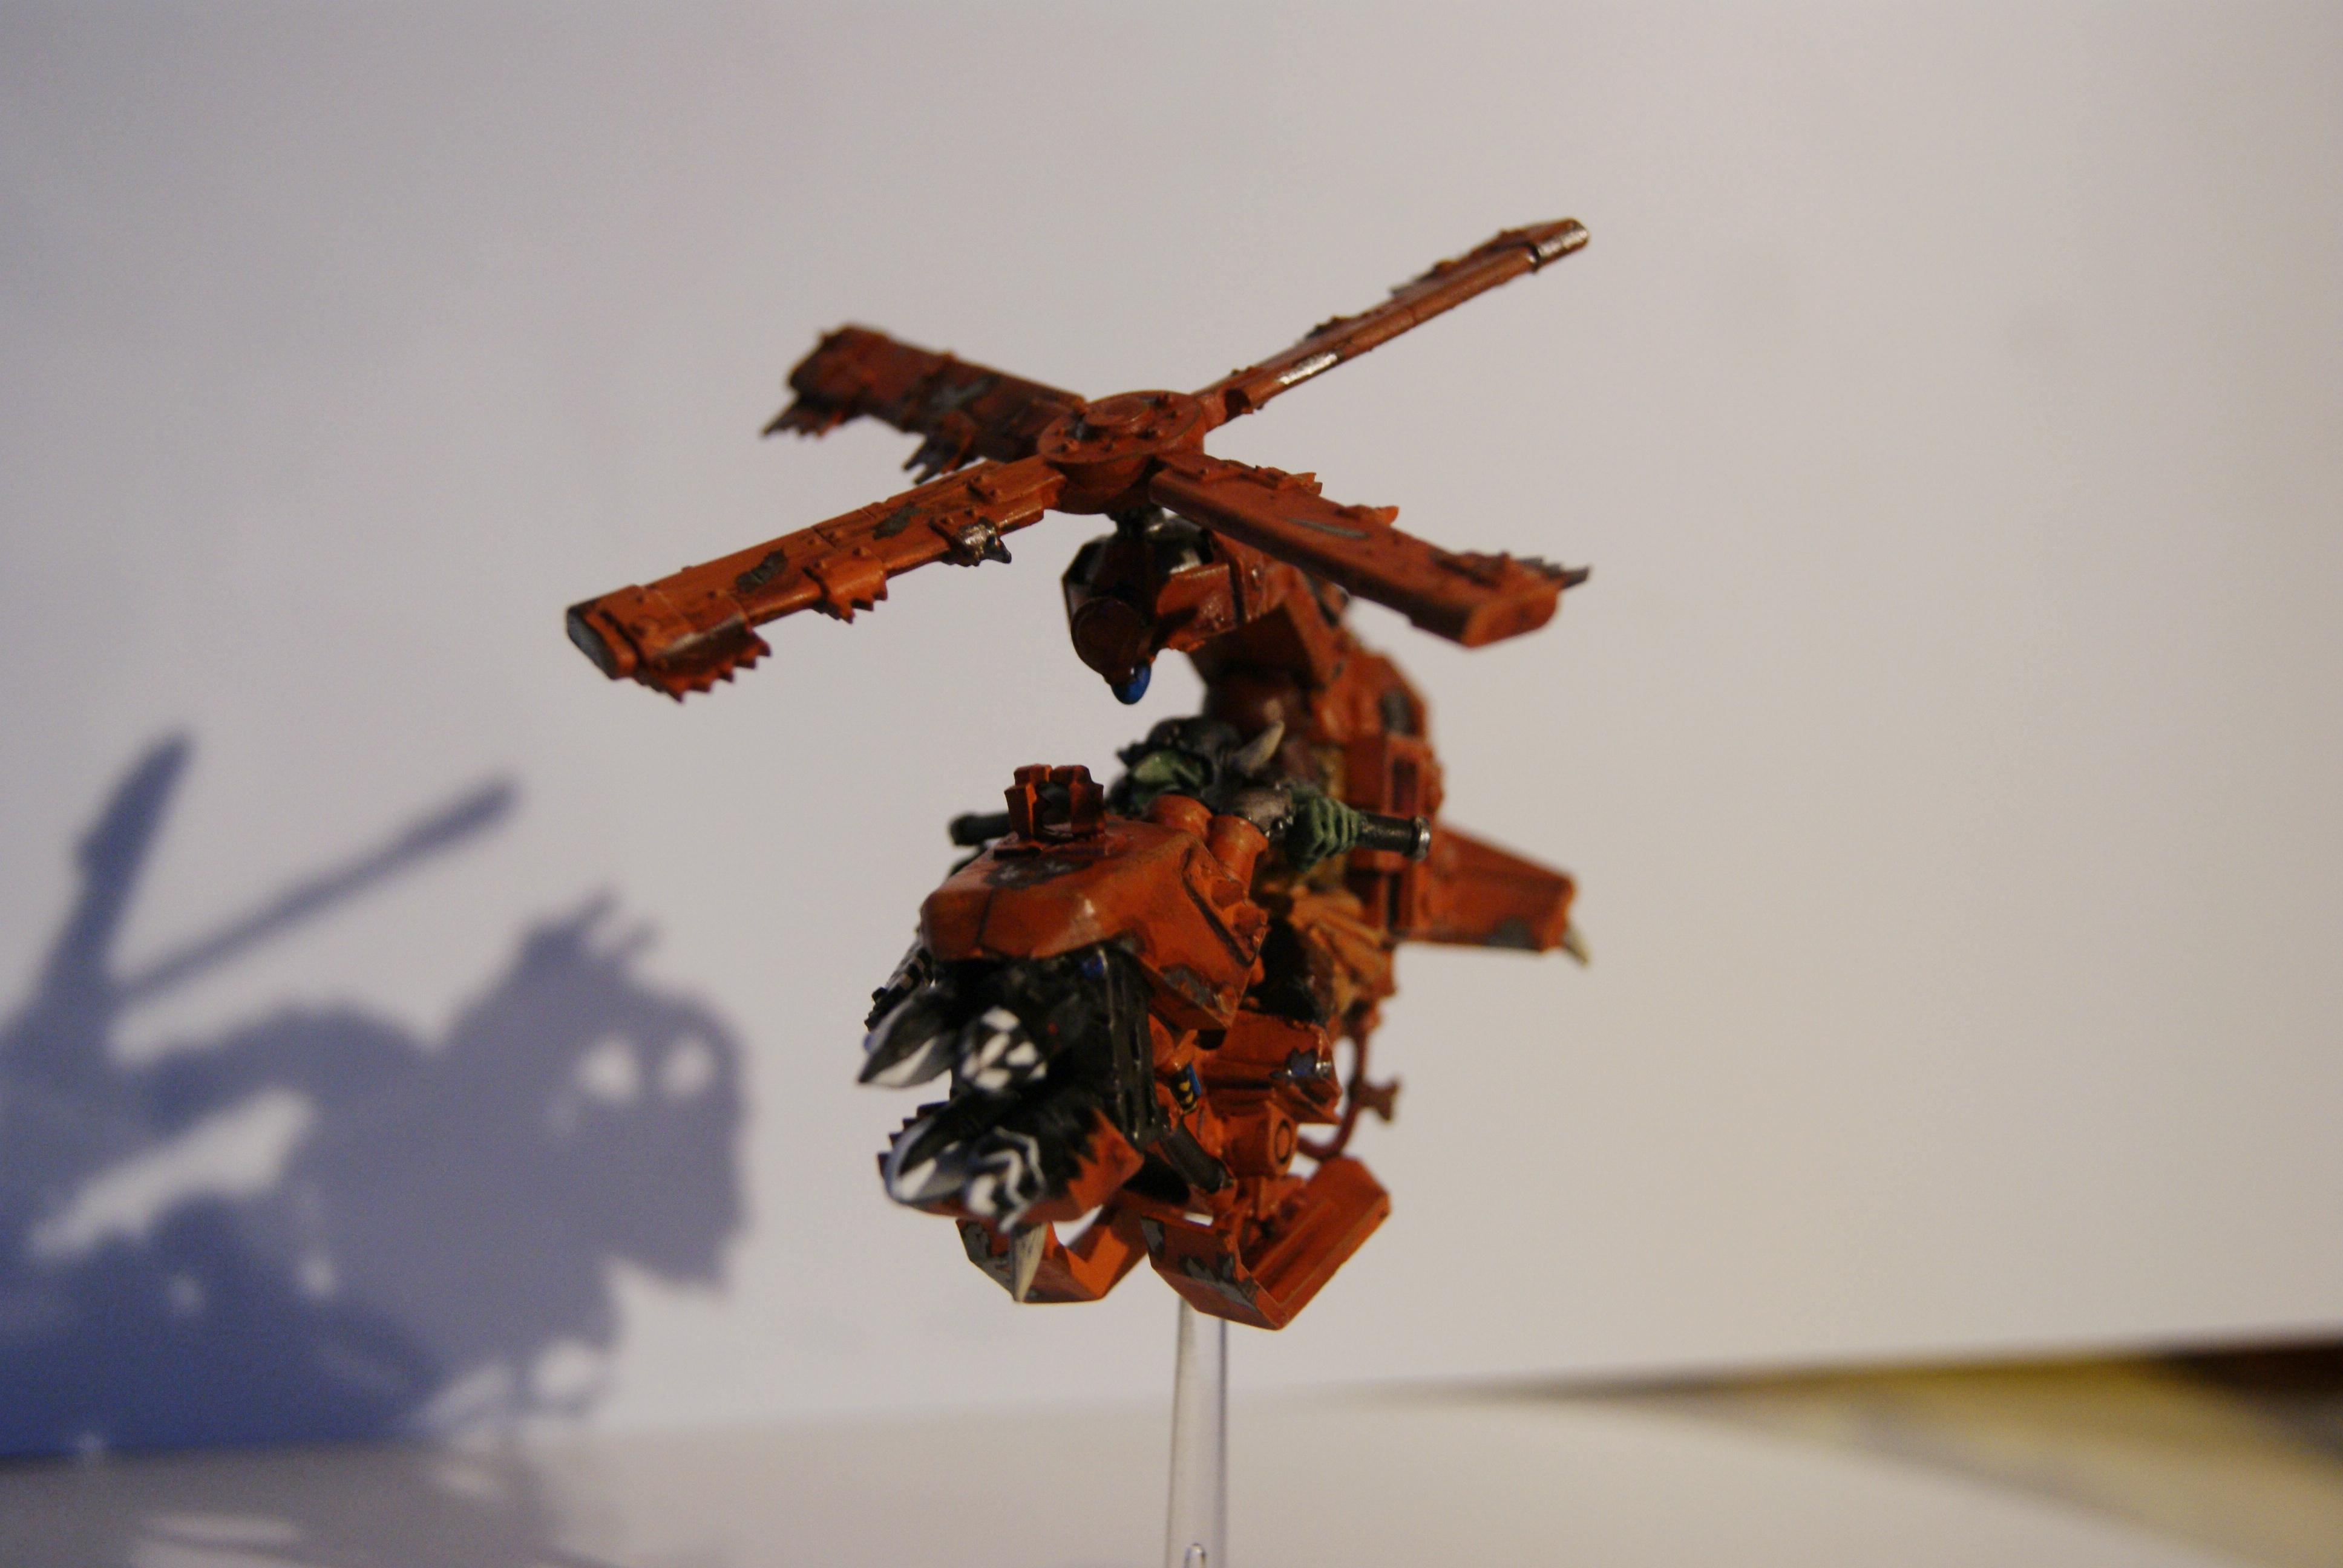 Conversion, Deffkopta, Gretchin, Grot Rebellion, Grot Rebels, Grots, Orks, Warhammer 40,000